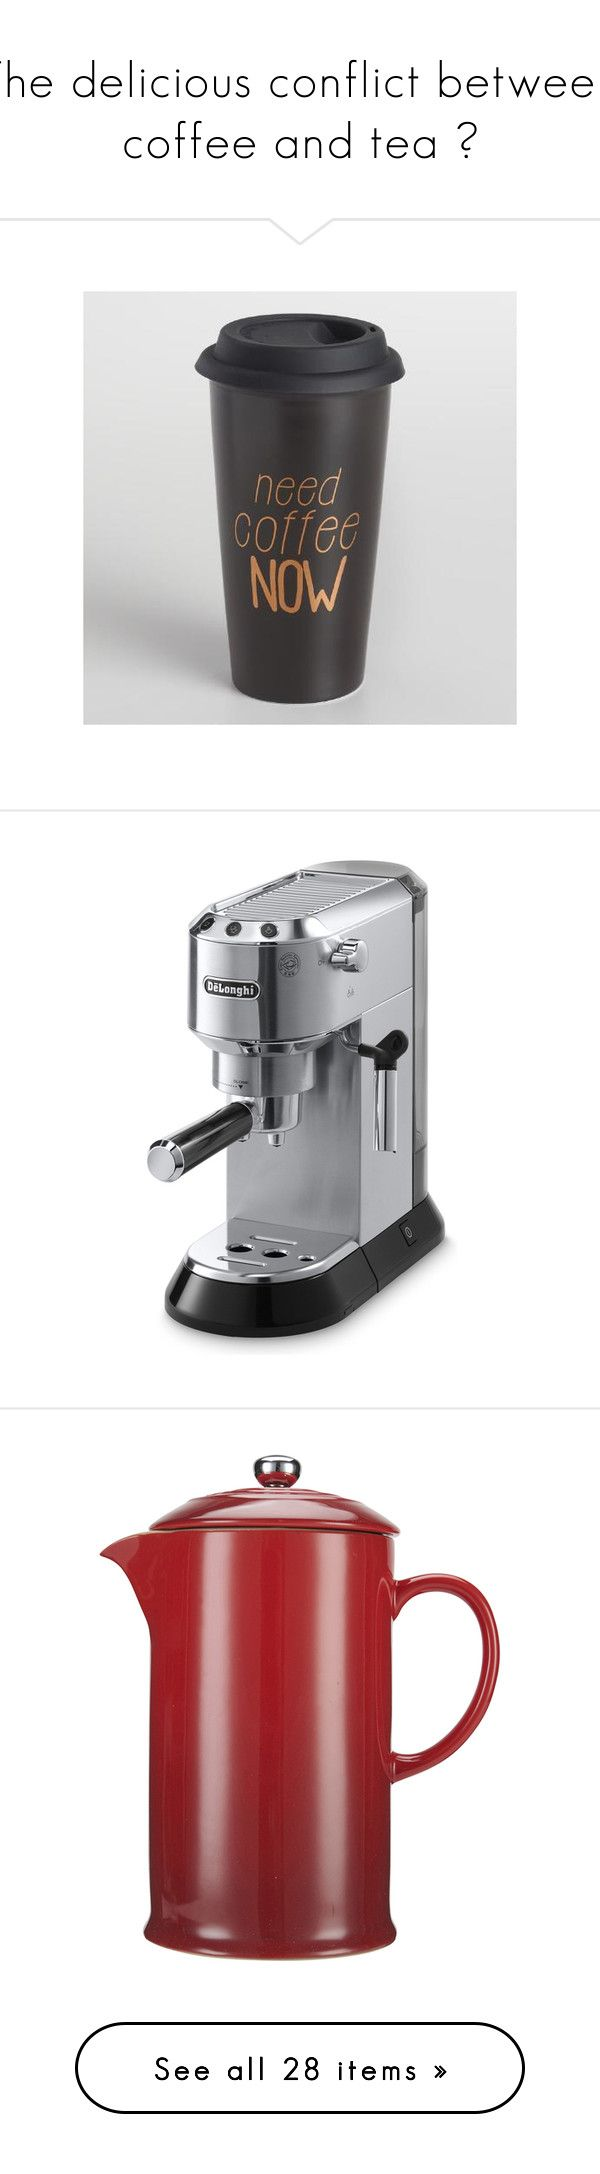 Electronic Types Of Coffee Machine 1000 ideas about espresso coffee machine on pinterest machines and espresso